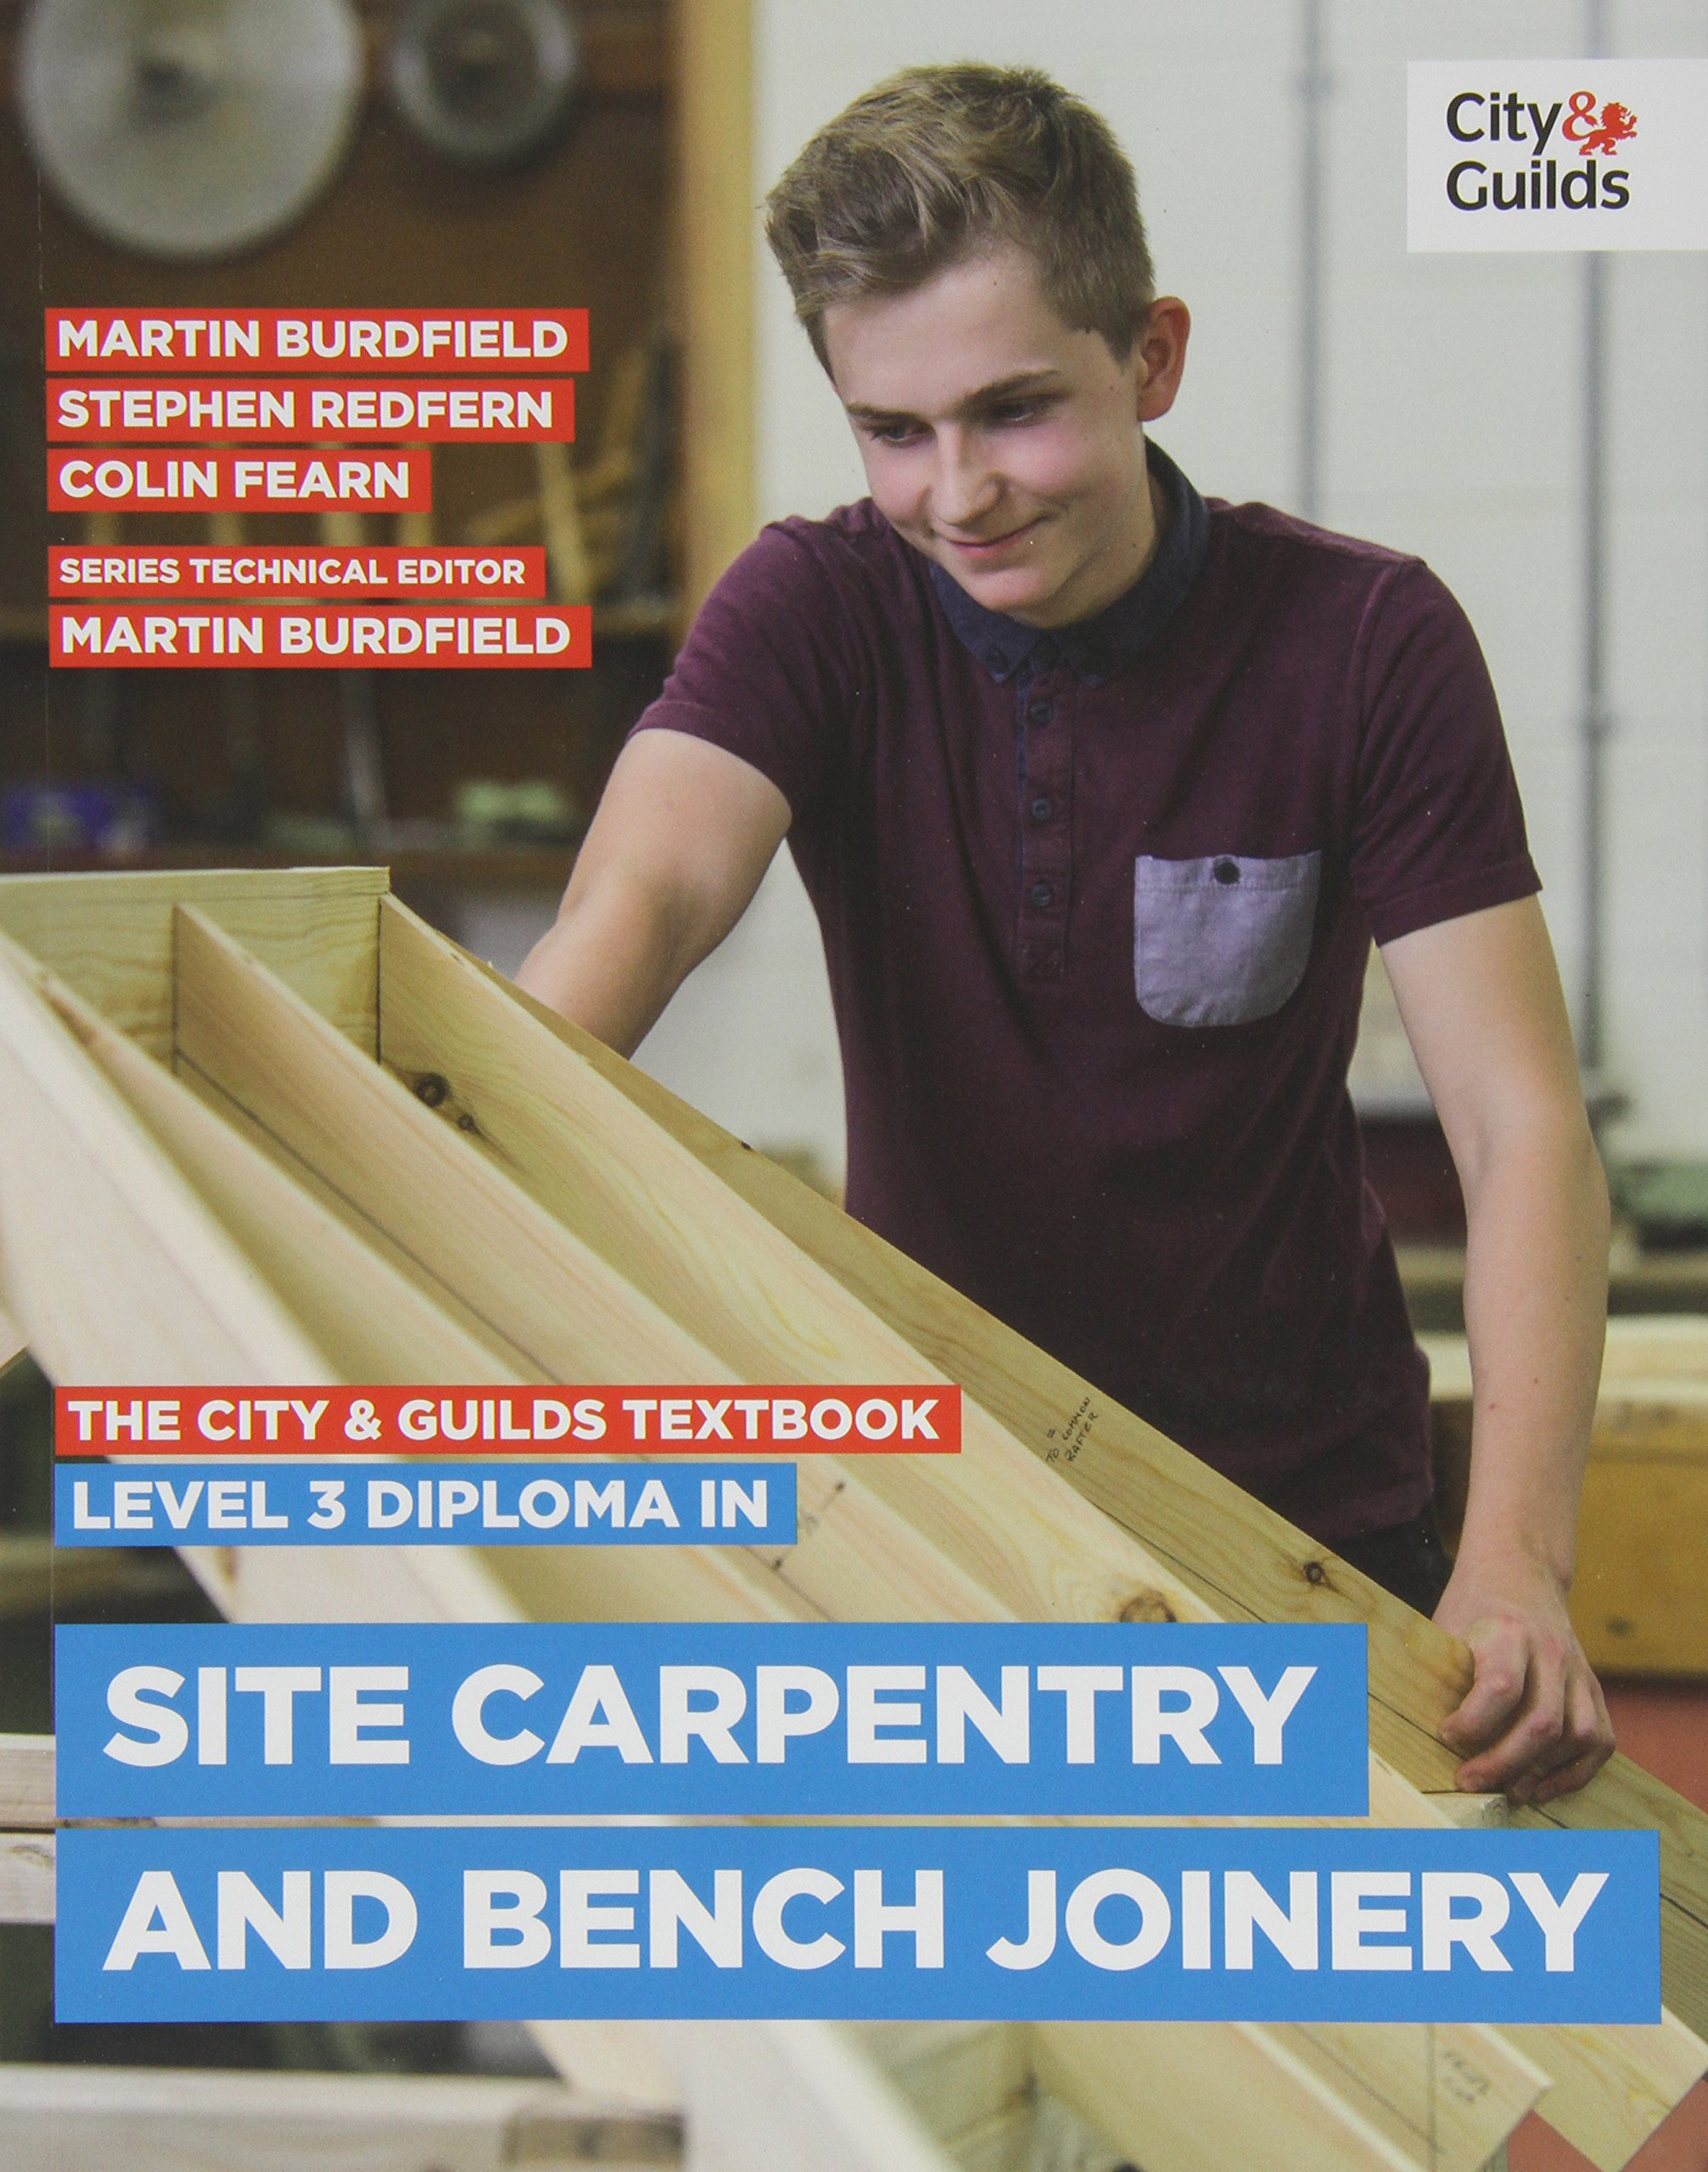 The City & Guilds Textbook: Level 3 Diploma in Site Carpentry & Bench  Joinery: Amazon.co.uk: Martin Burdfield, Stephen Redfern, Fearn Colin,  Beattie Justin, ...